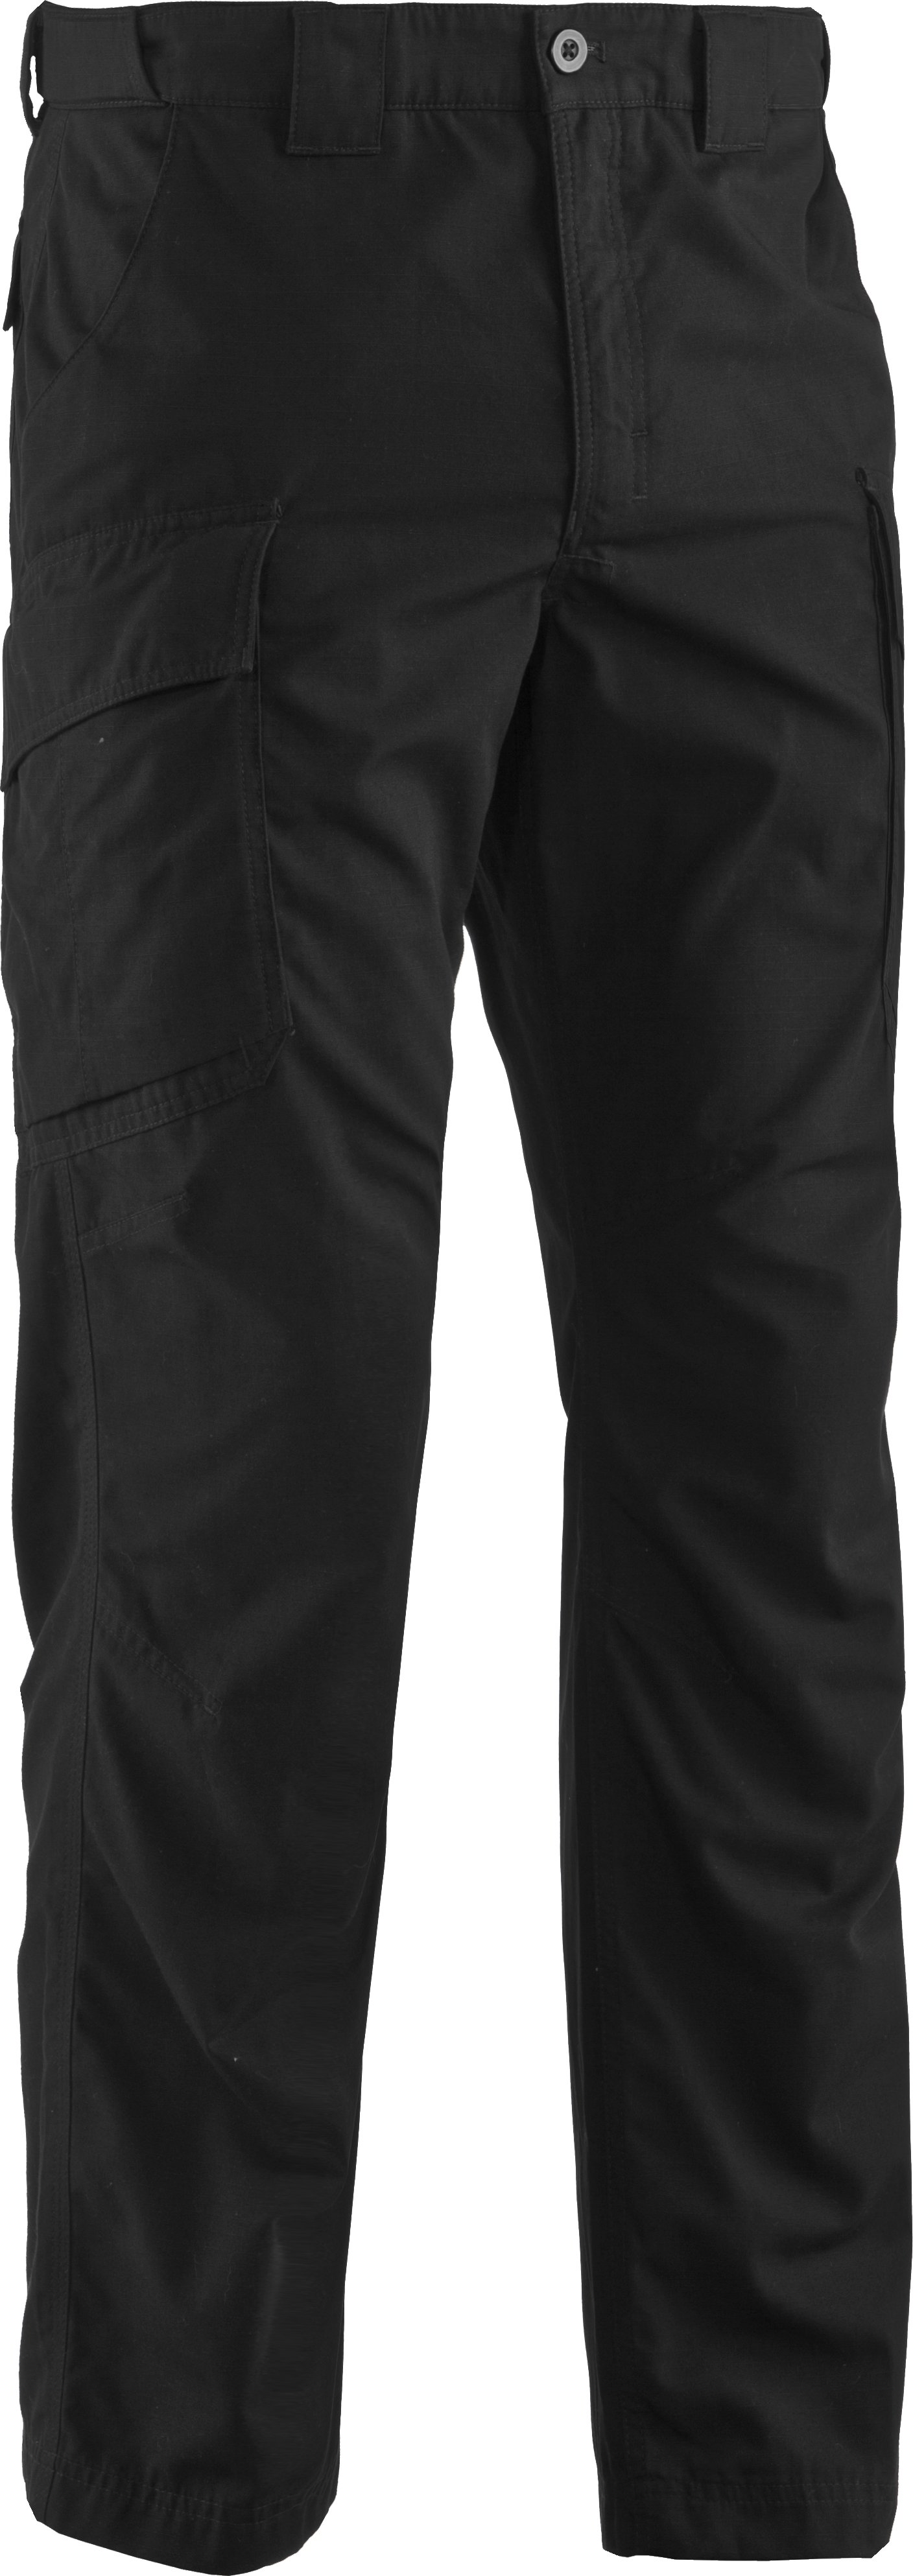 Men's UA Tactical Pants, Black